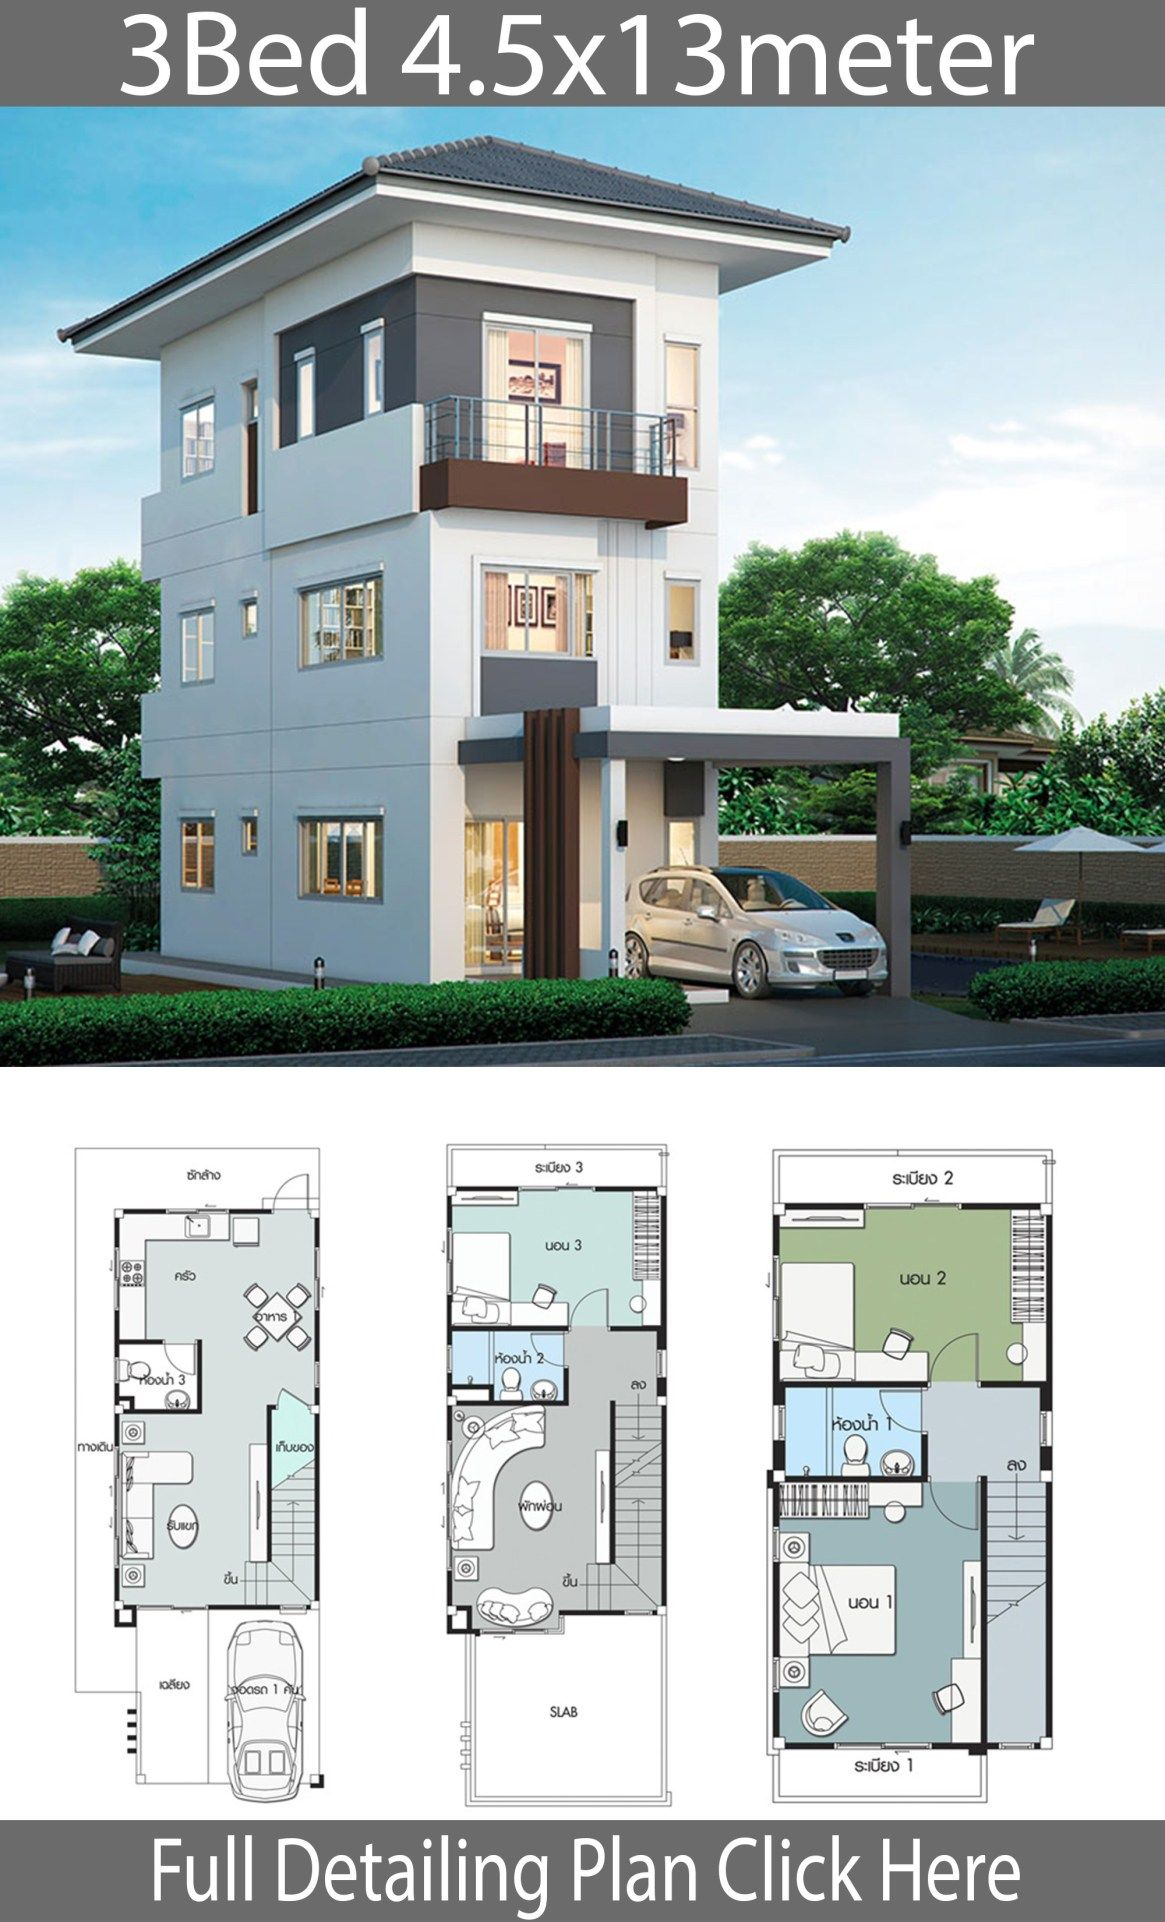 House Design Plan 4 5x13m With 3 Bedrooms Home Design With Plansearch Narrow House Designs Narrow House Plans Home Design Plans